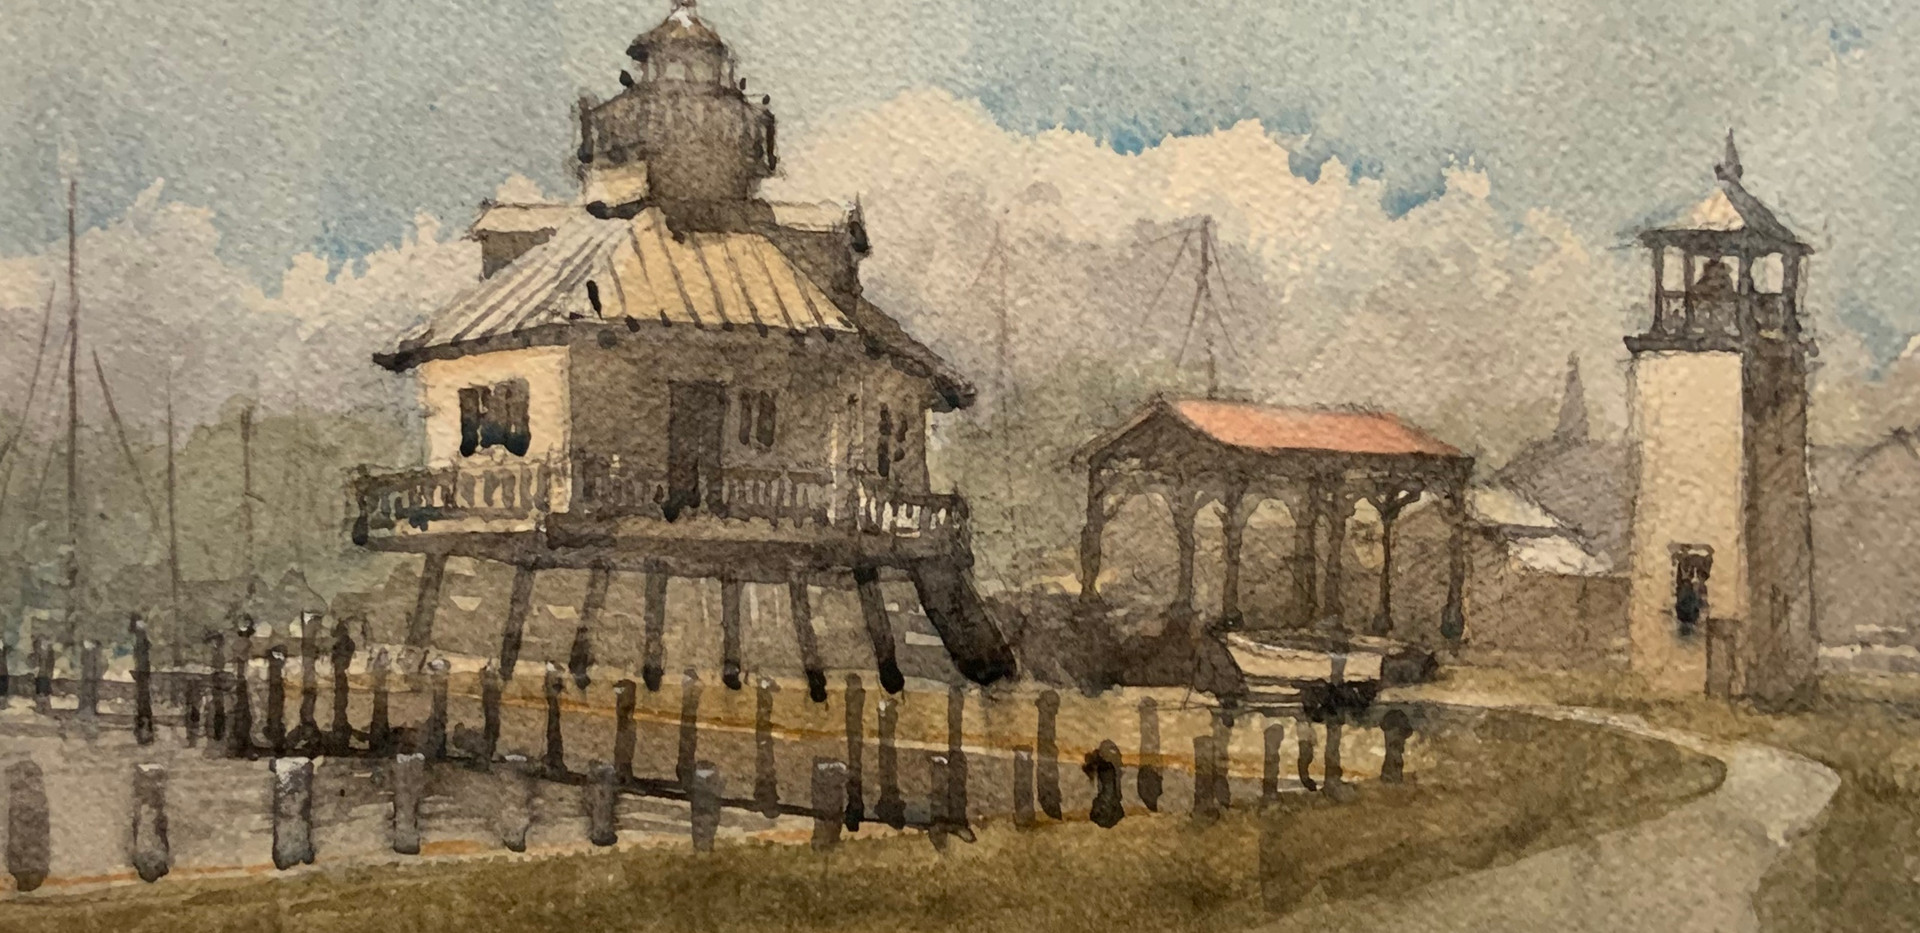 Lighthouse, Boat Shed, Bell Tower, water